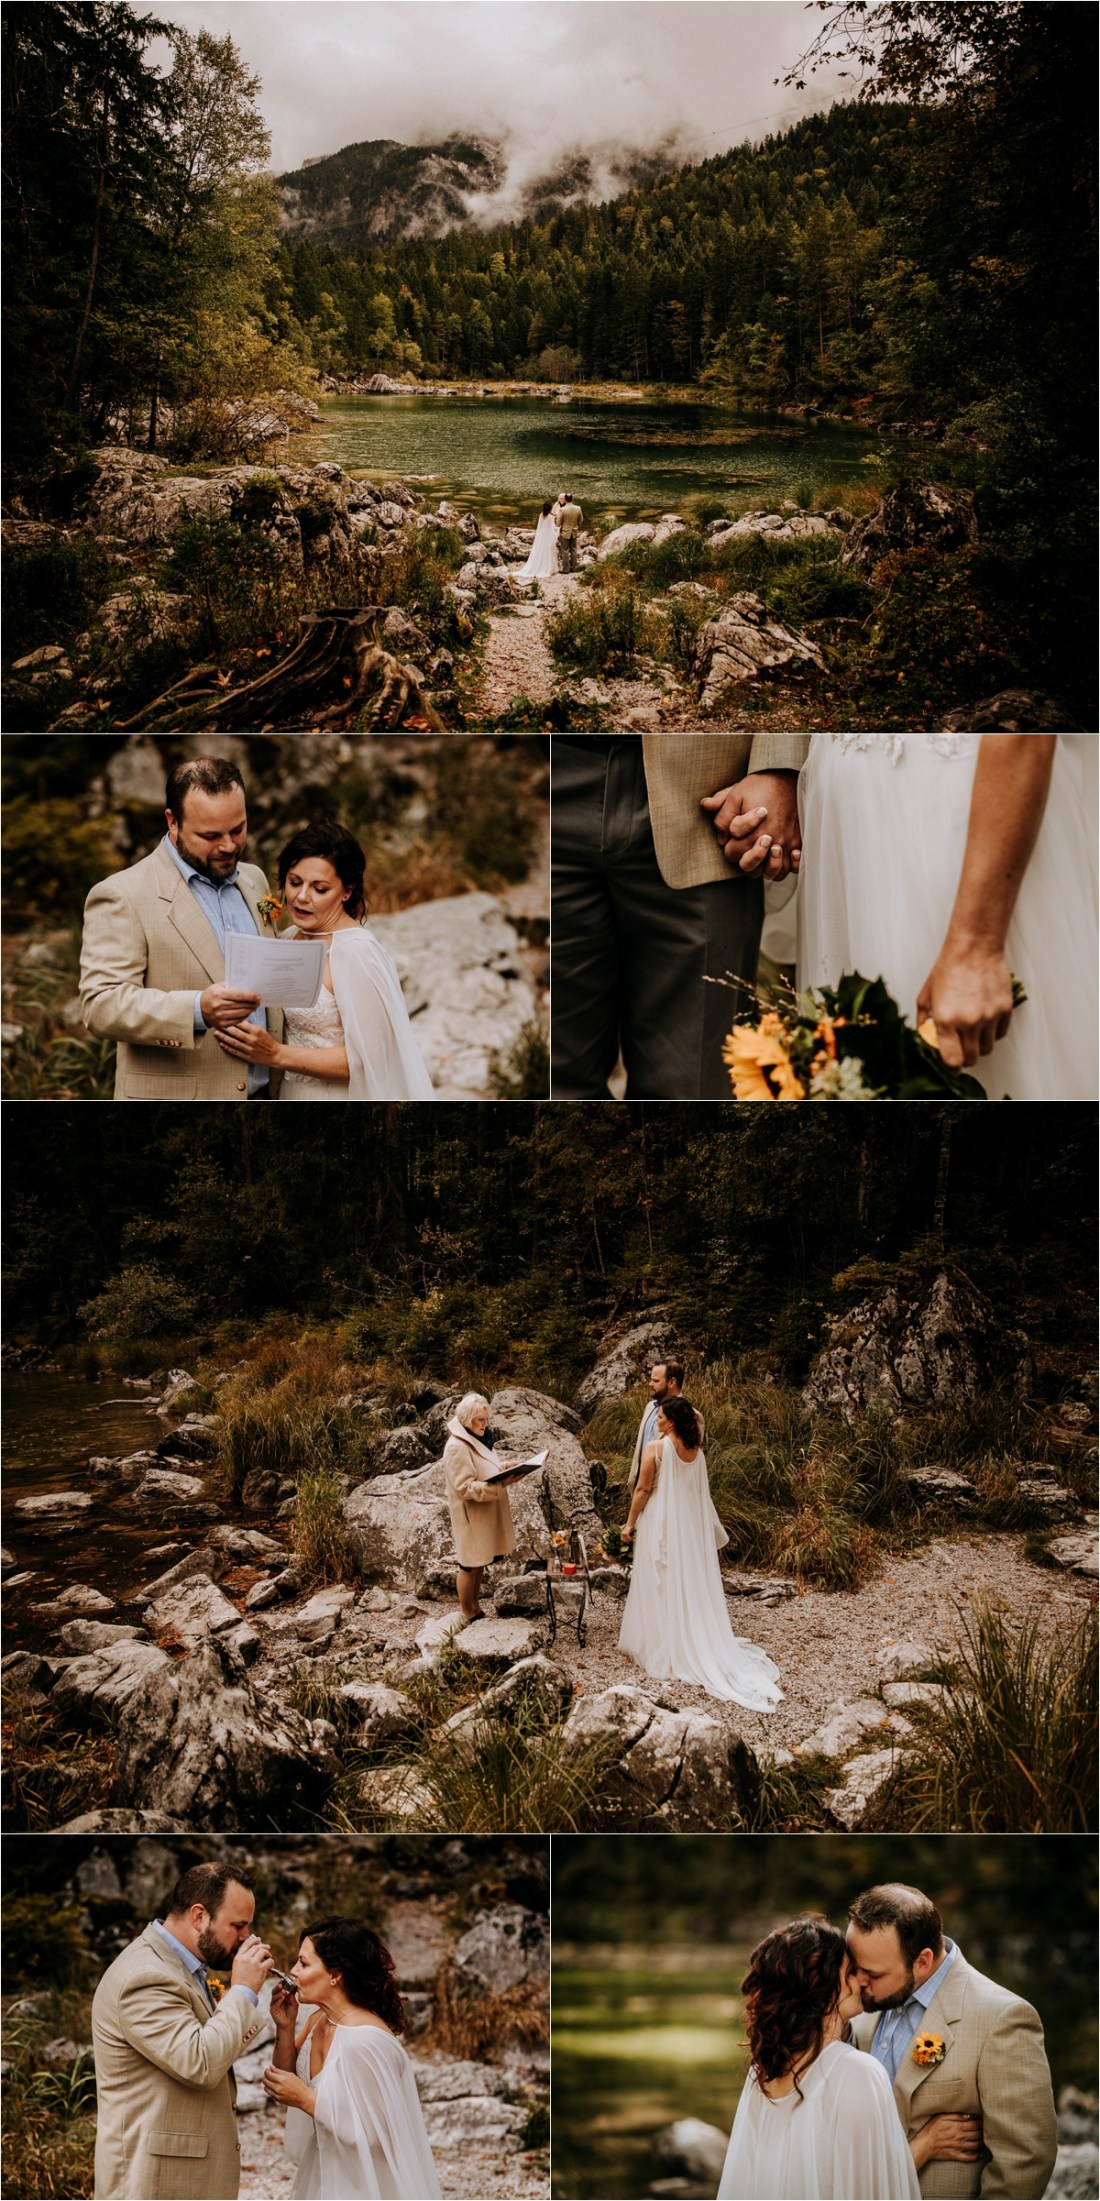 A handfasting ceremony in the Bavarian Alps at Lake Eibsee by In Love With A Wolf